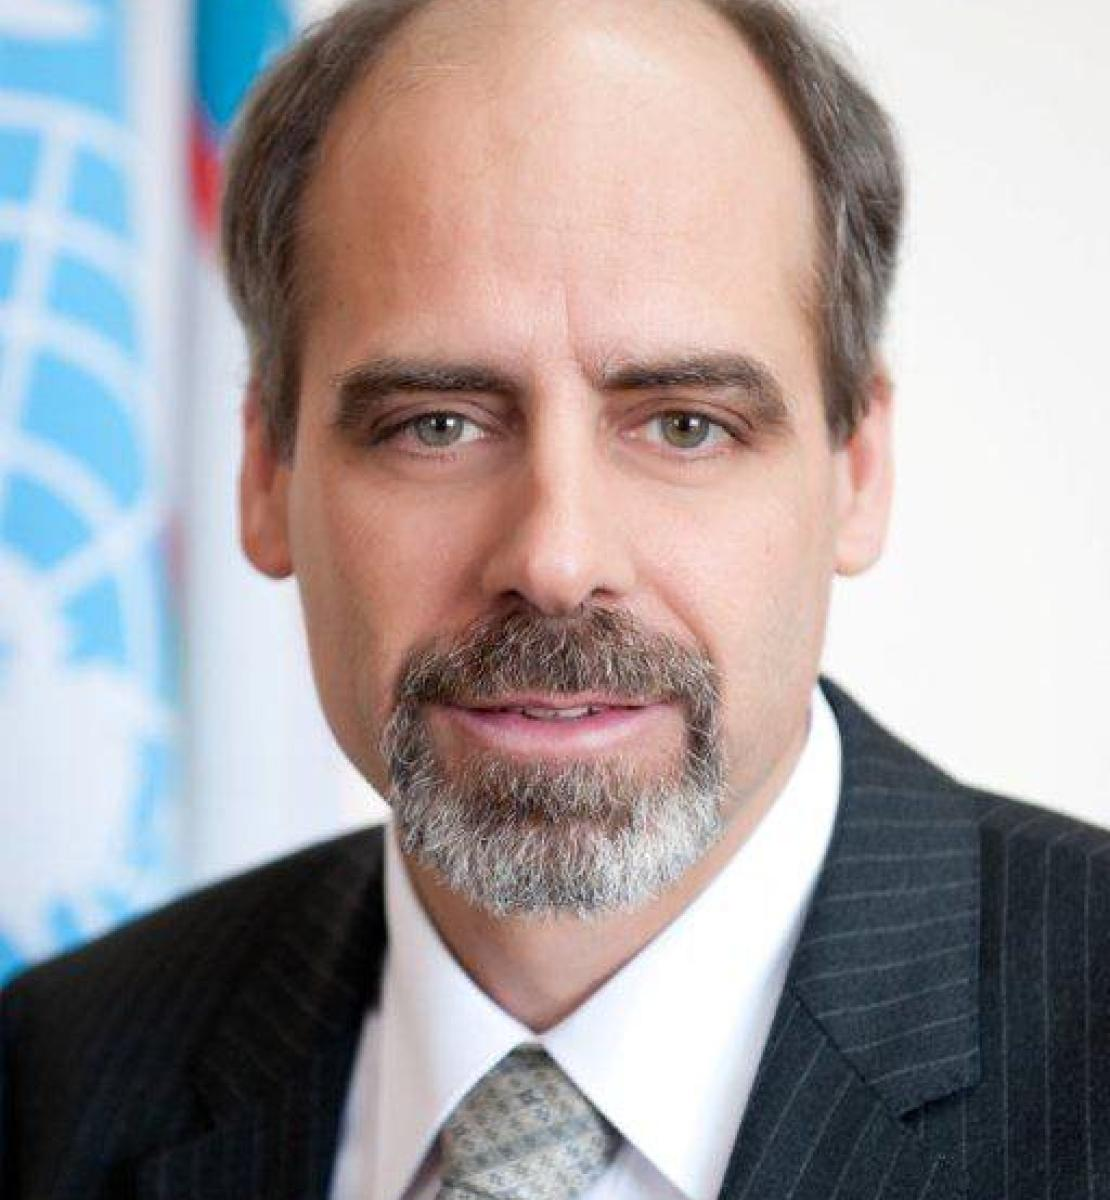 A headshot of a man looking straight into the camera with the flag from the United Nations in the background.